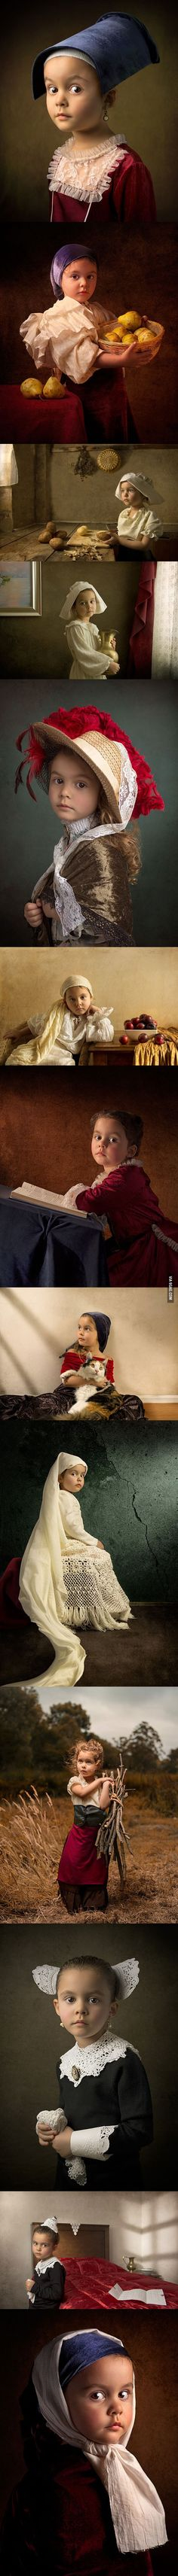 Father photographs his 5-year old daughter in the settings of Renaissance Dutch, Flemish, and Italian masters